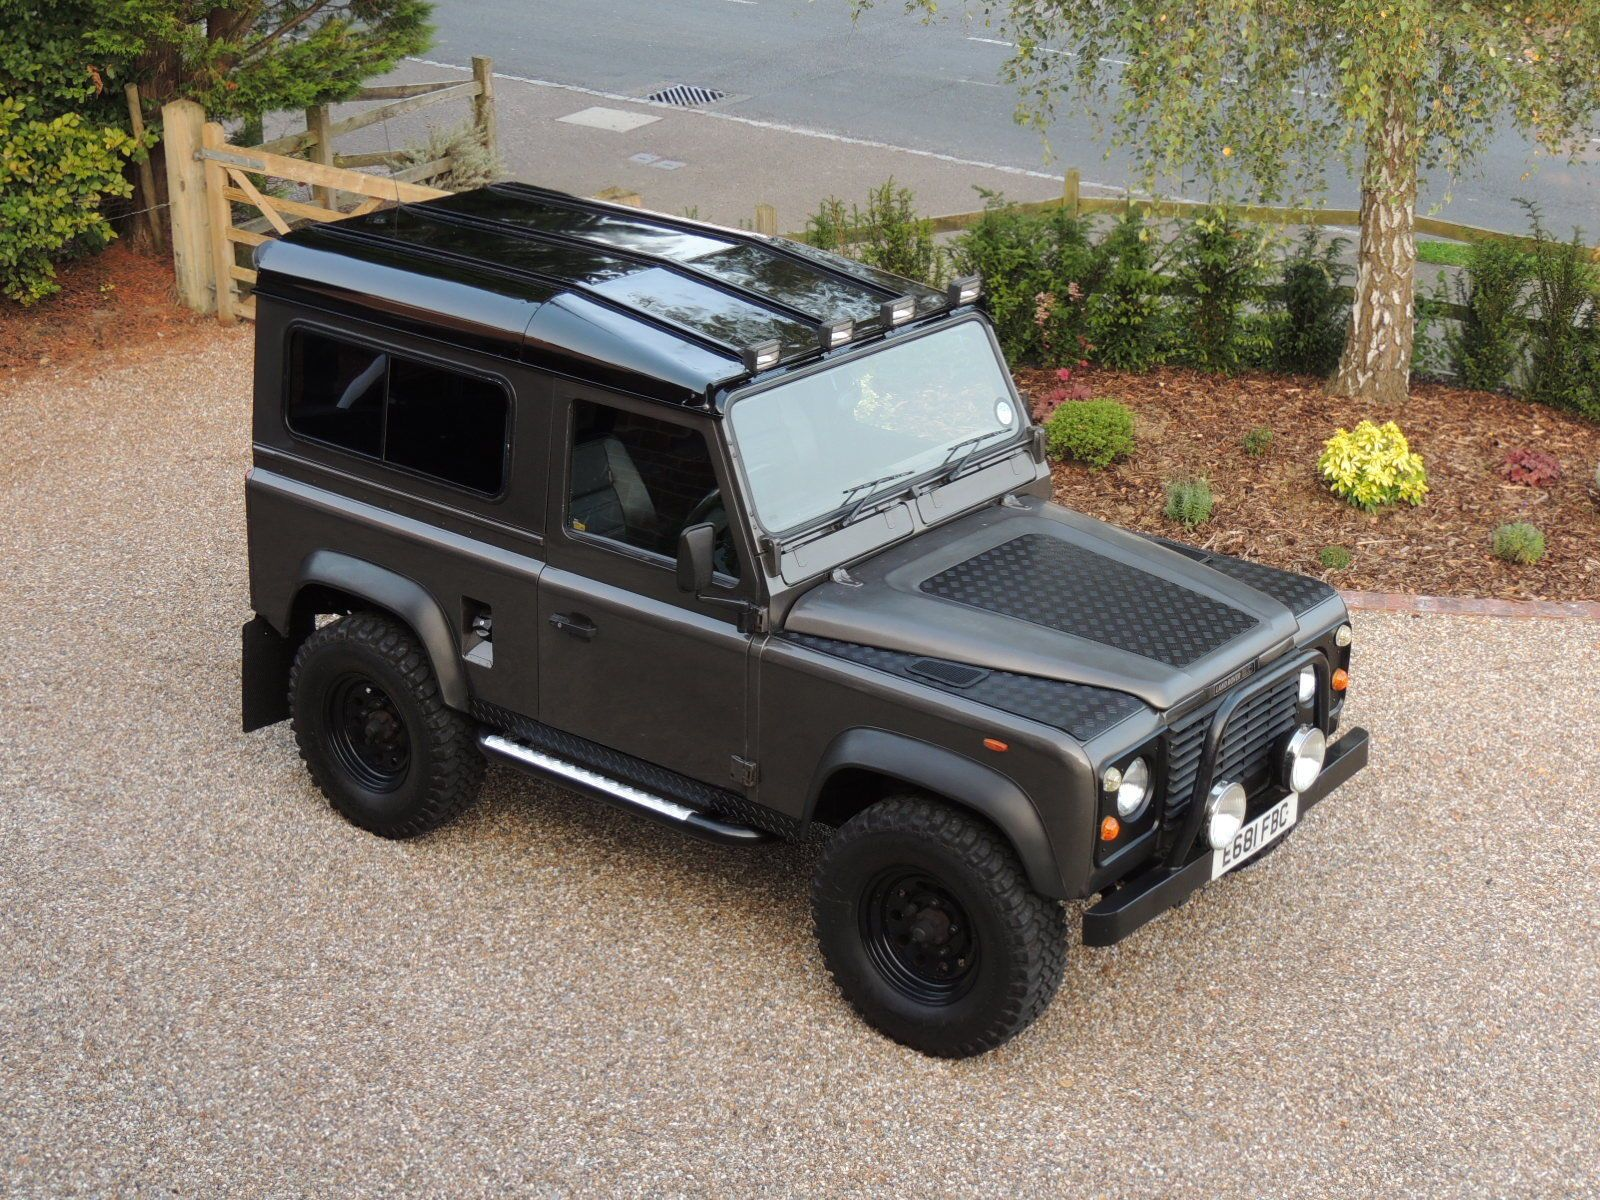 ebay gallery sale for lr classic landrover used rover enchanting ideas magnificent component cars land site boiq uk